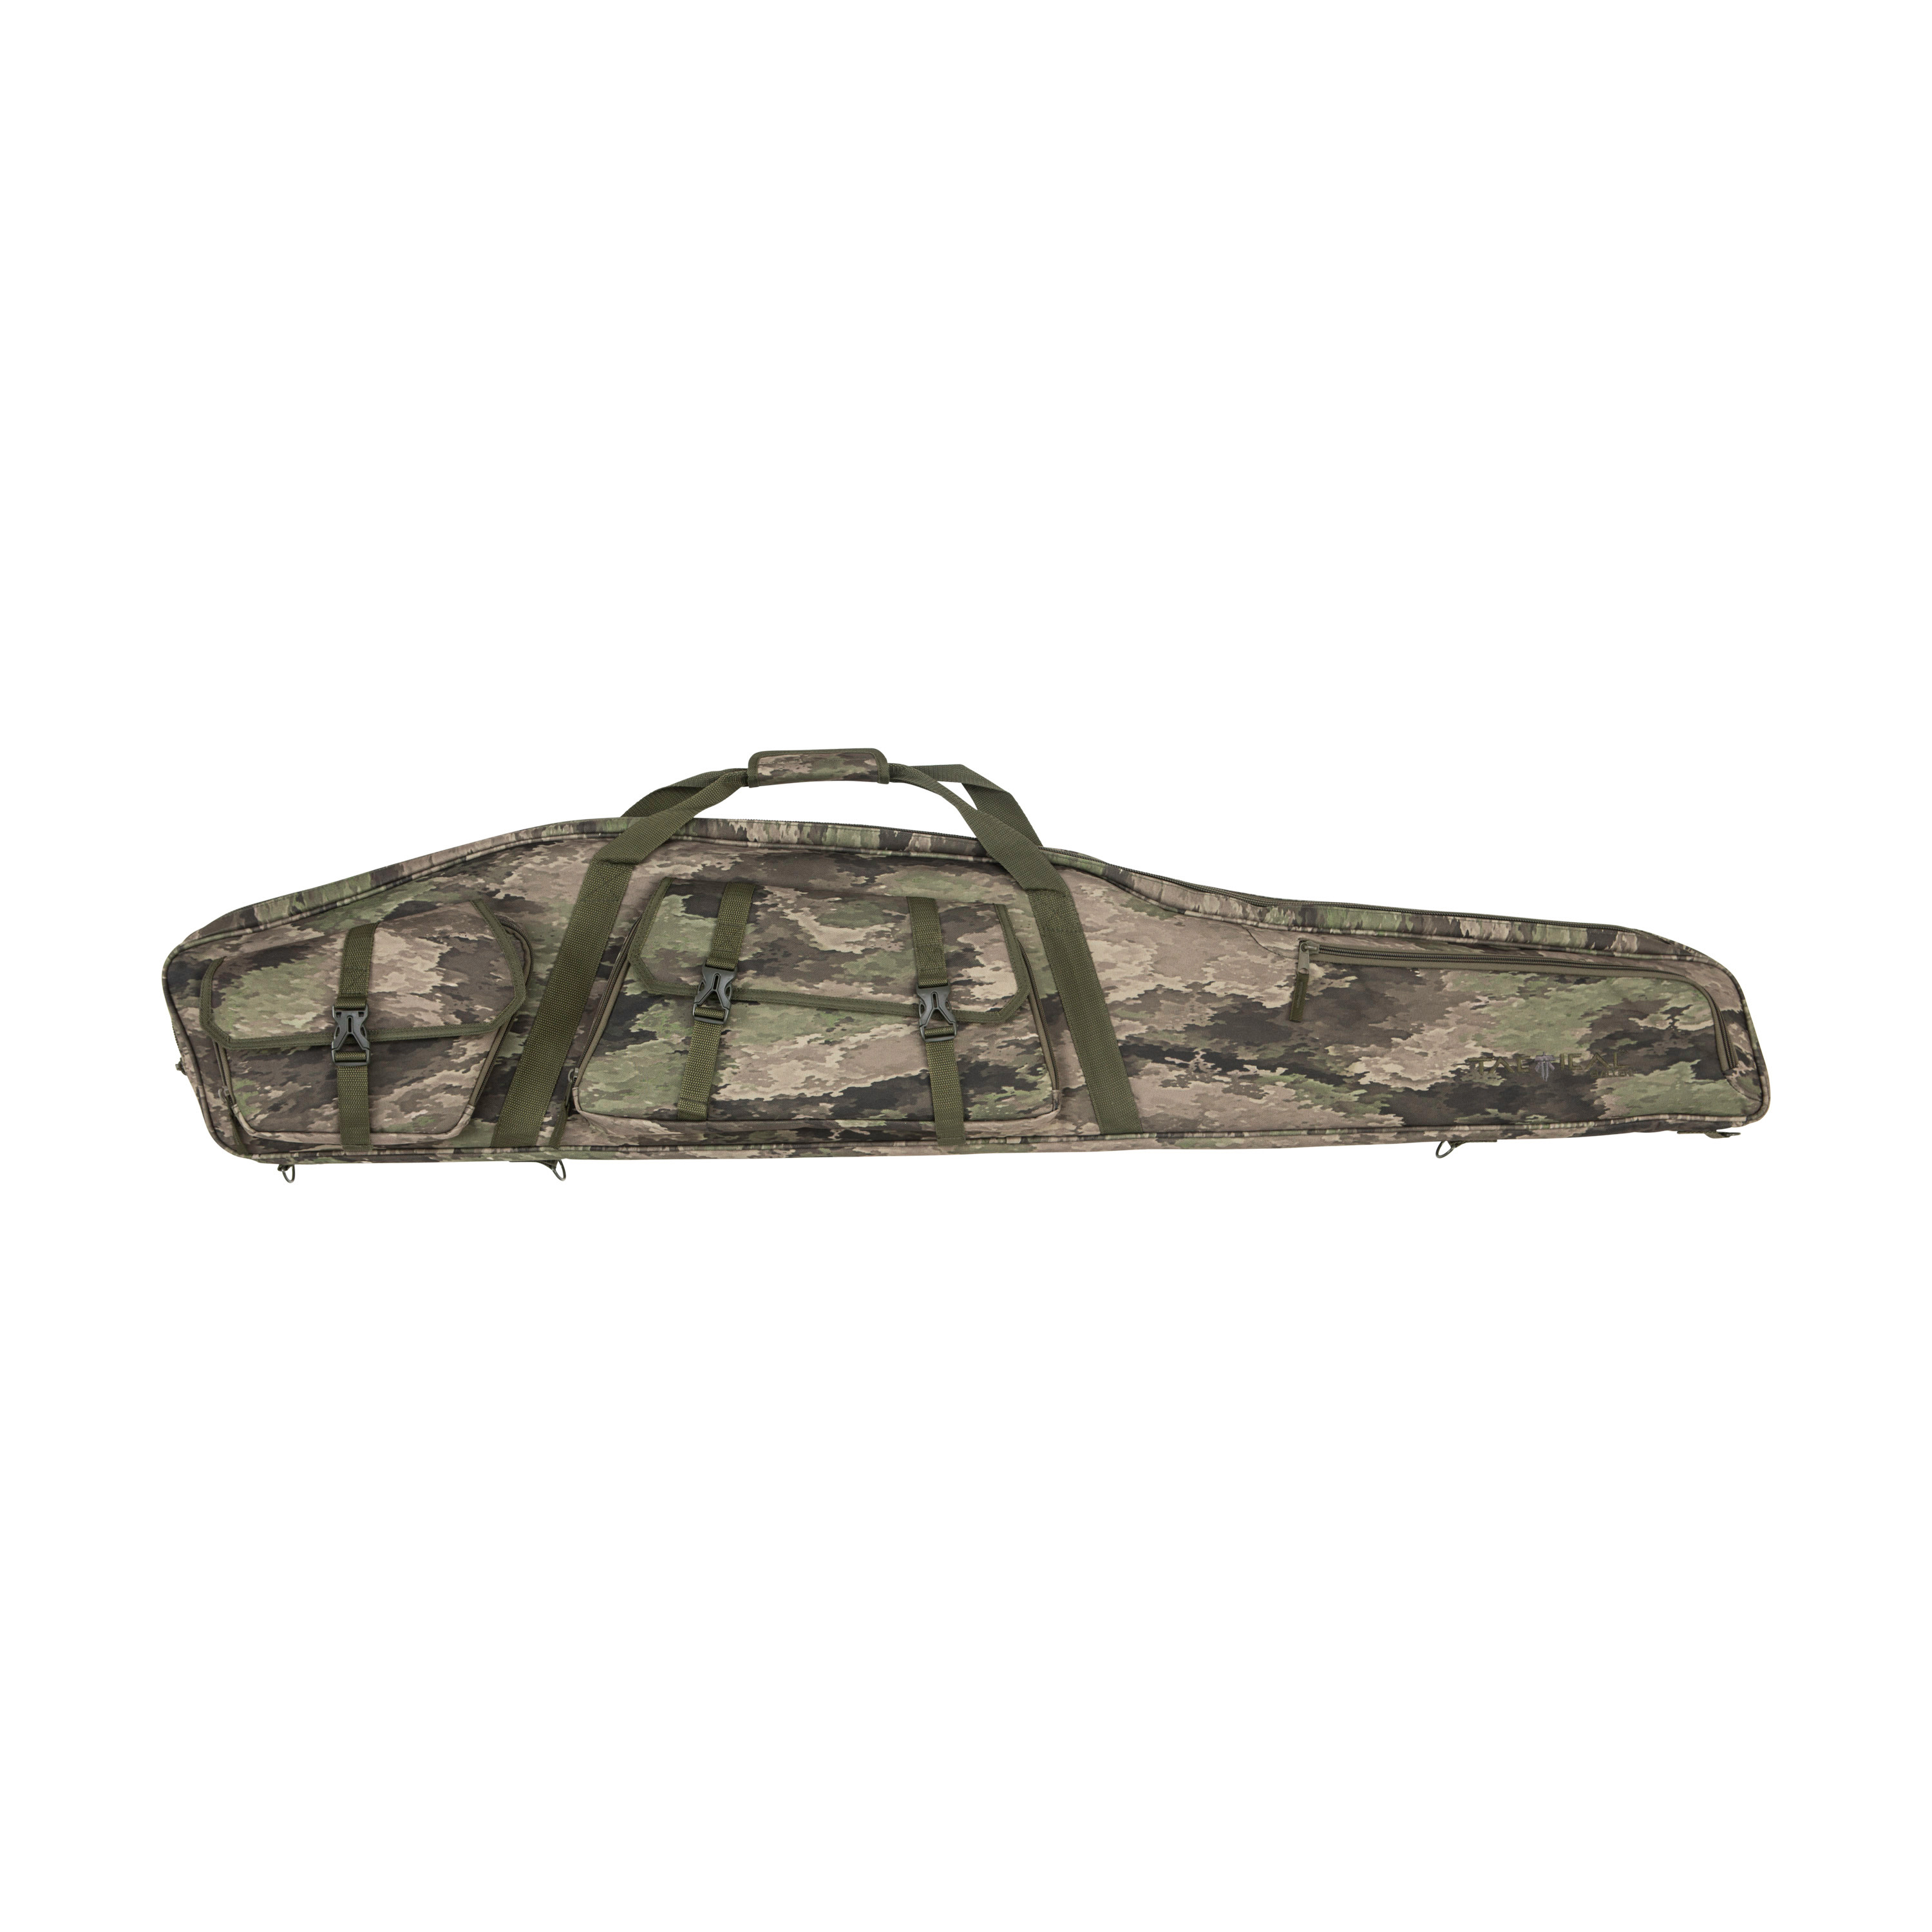 Allen Velocity Tactical Soft Rifle Case 55